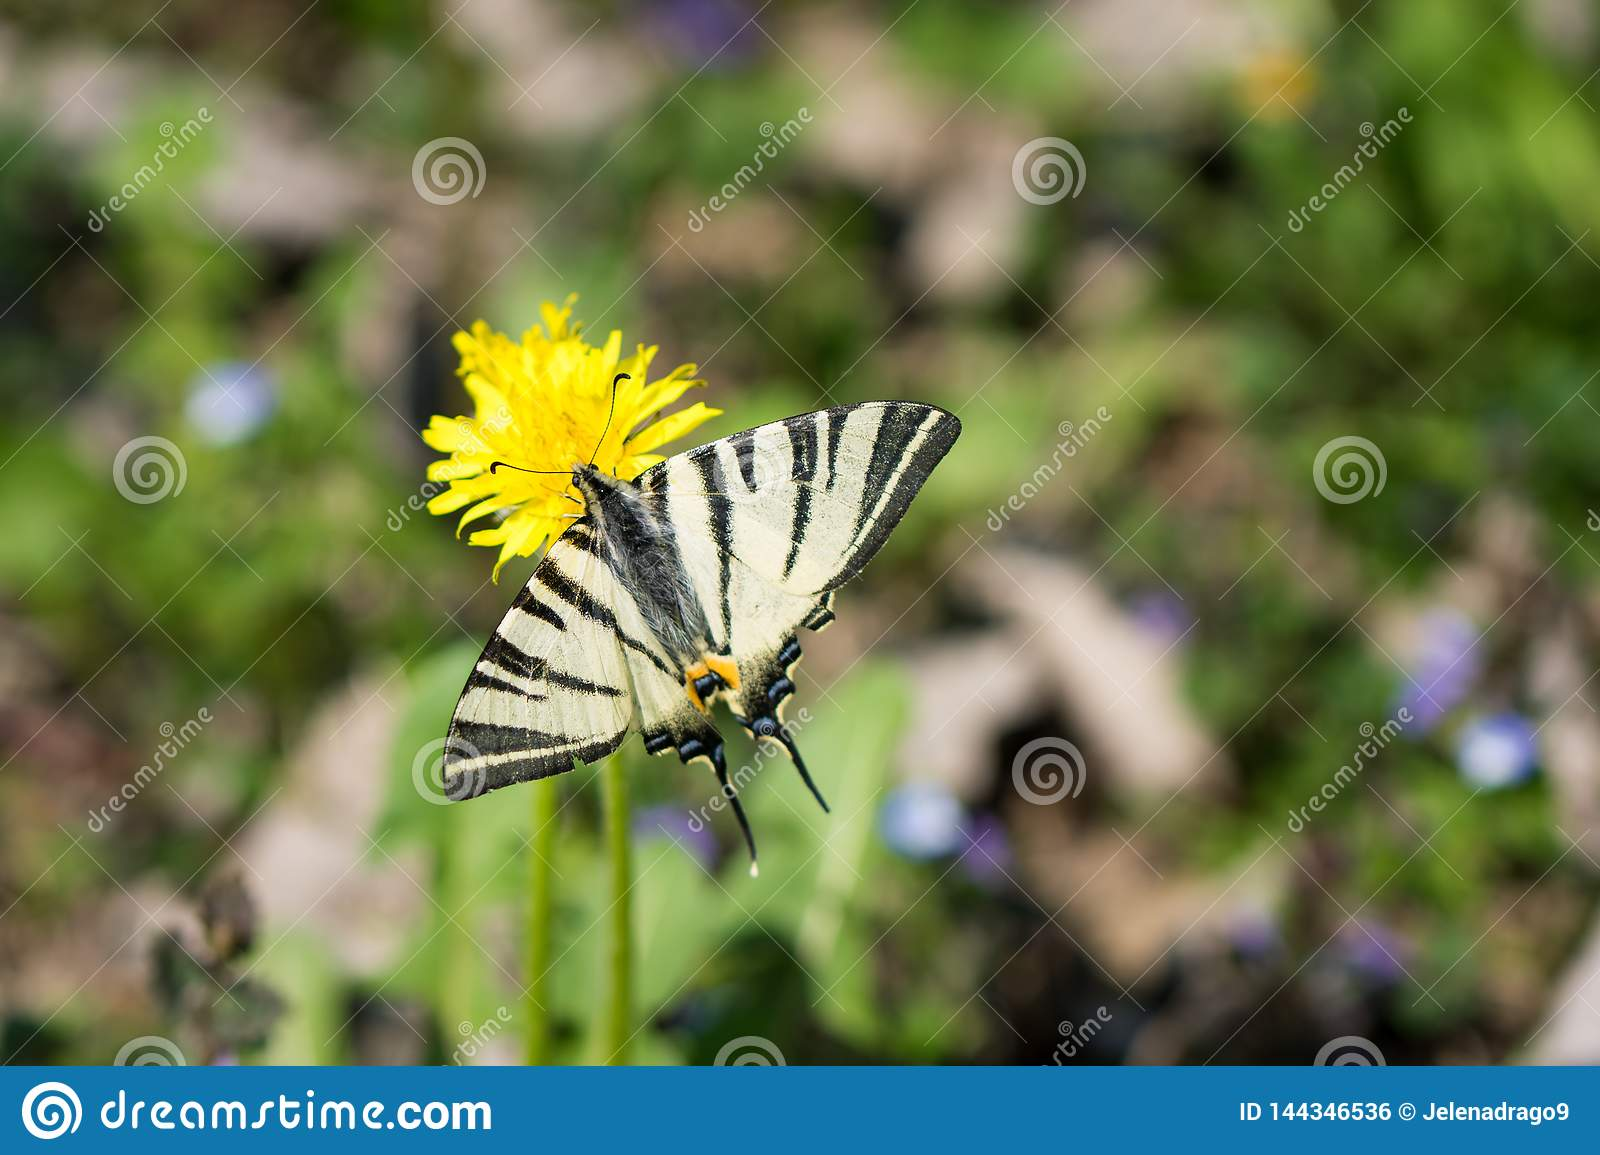 Butterfly Papilio machaon, common white swallowtail standing on yellow flower.